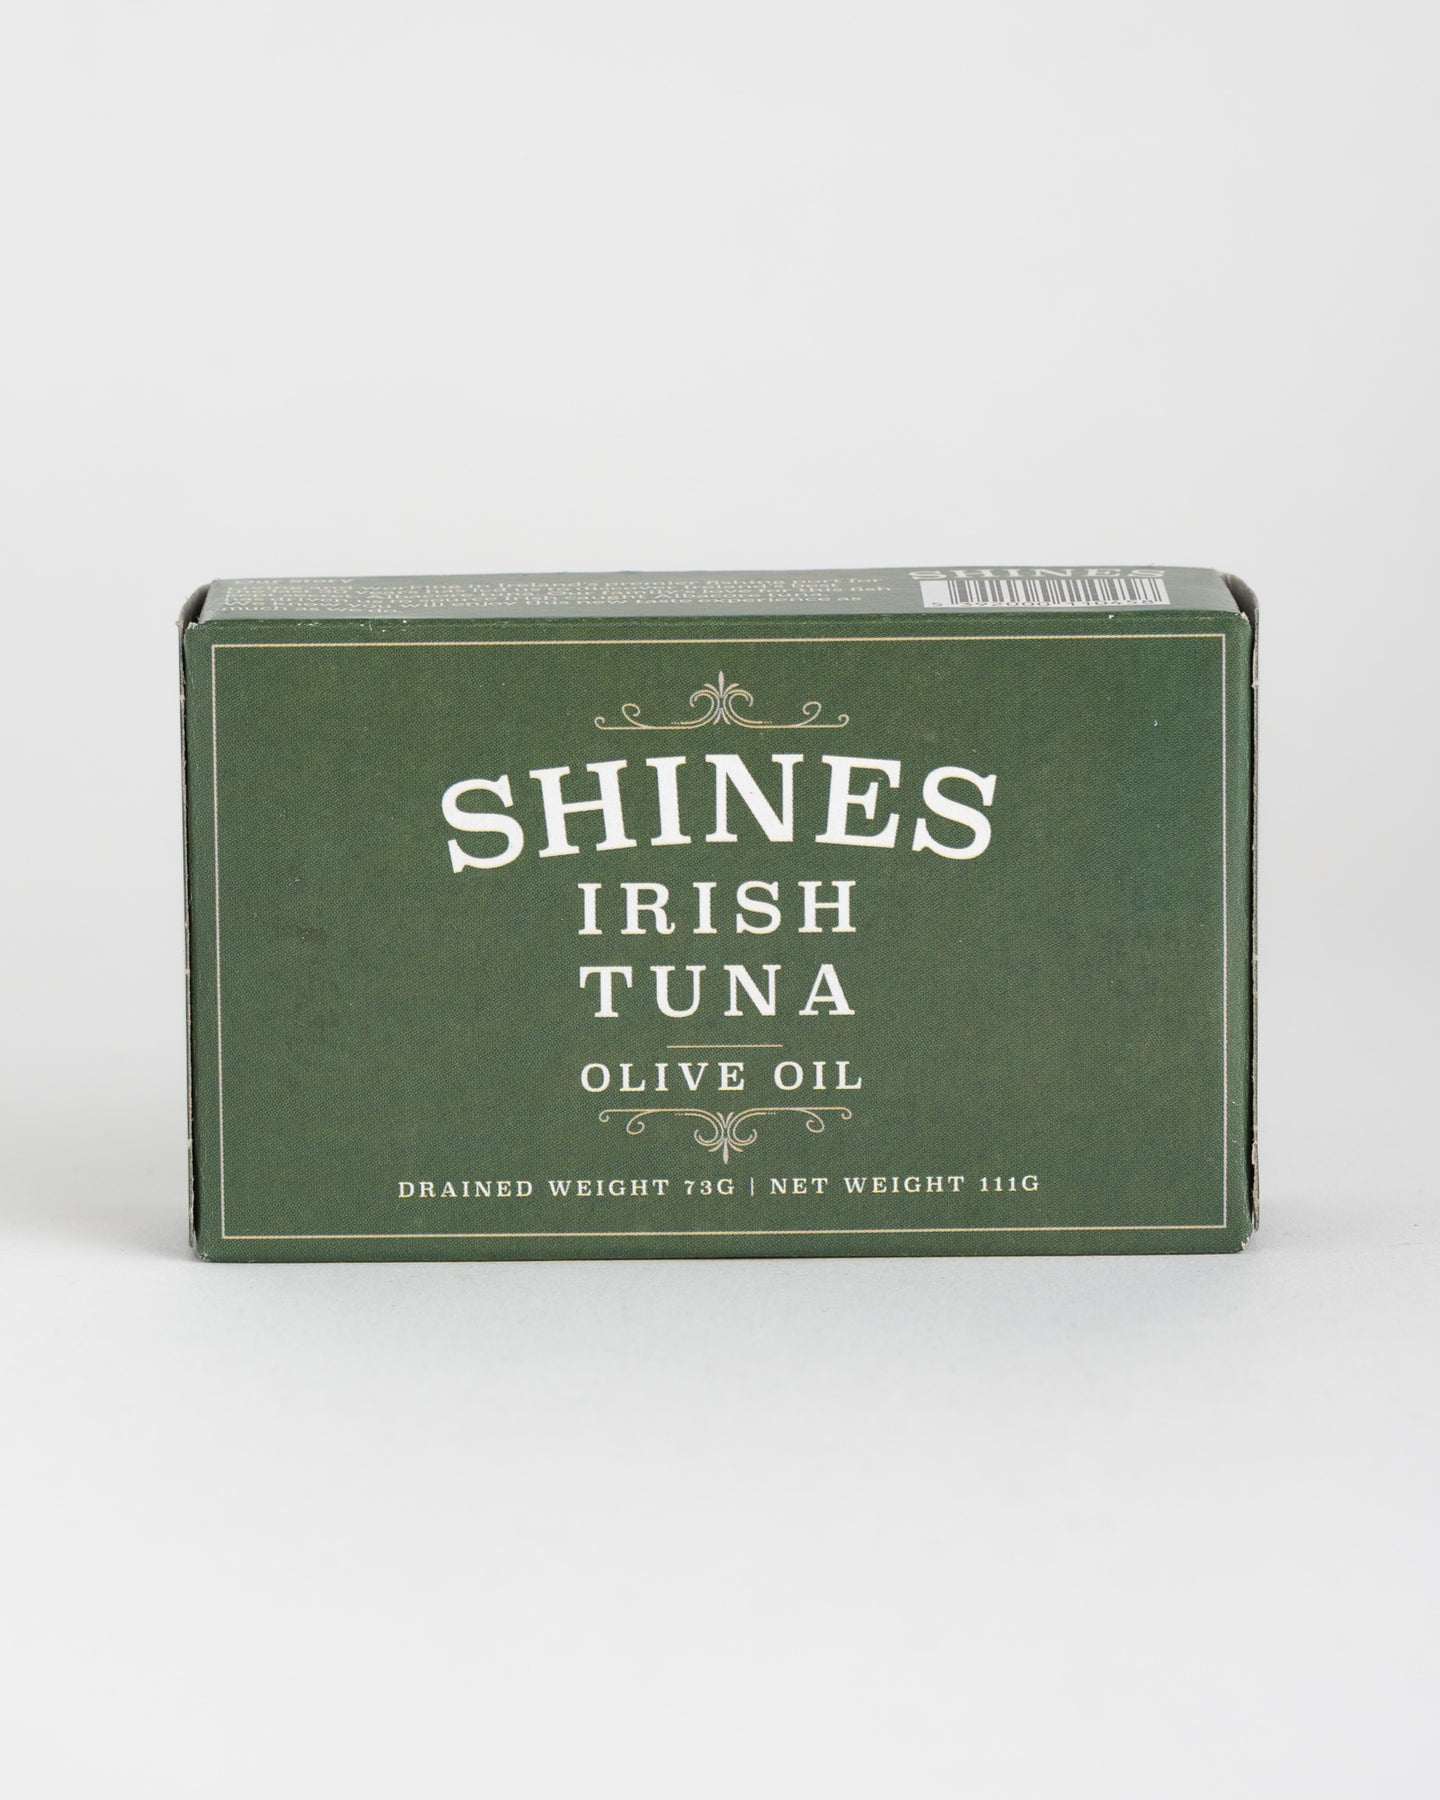 Shines  - Irish Tuna in Oilve Oil